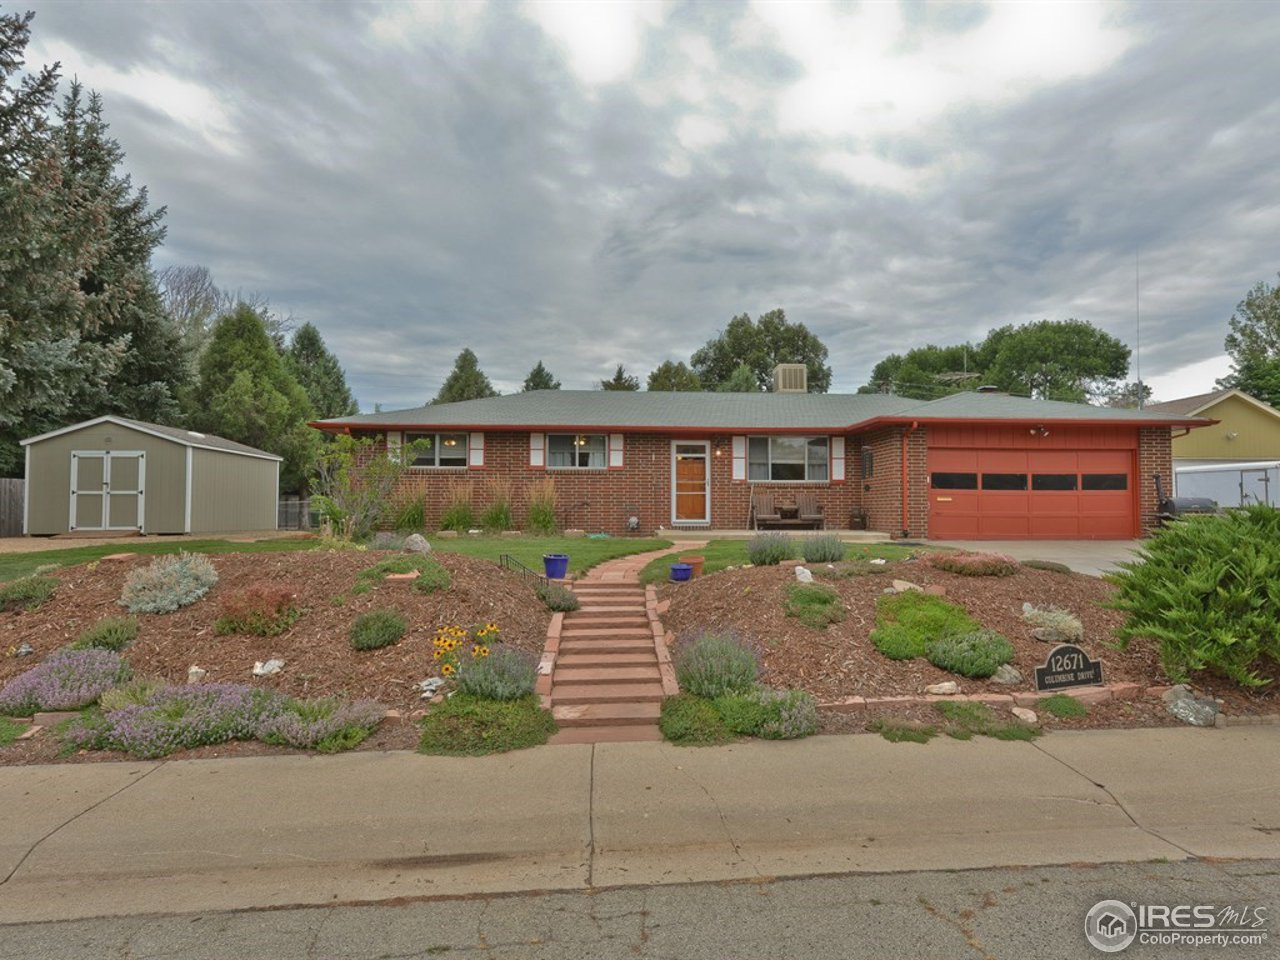 12671 Columbine Dr, Longmont CO 80504